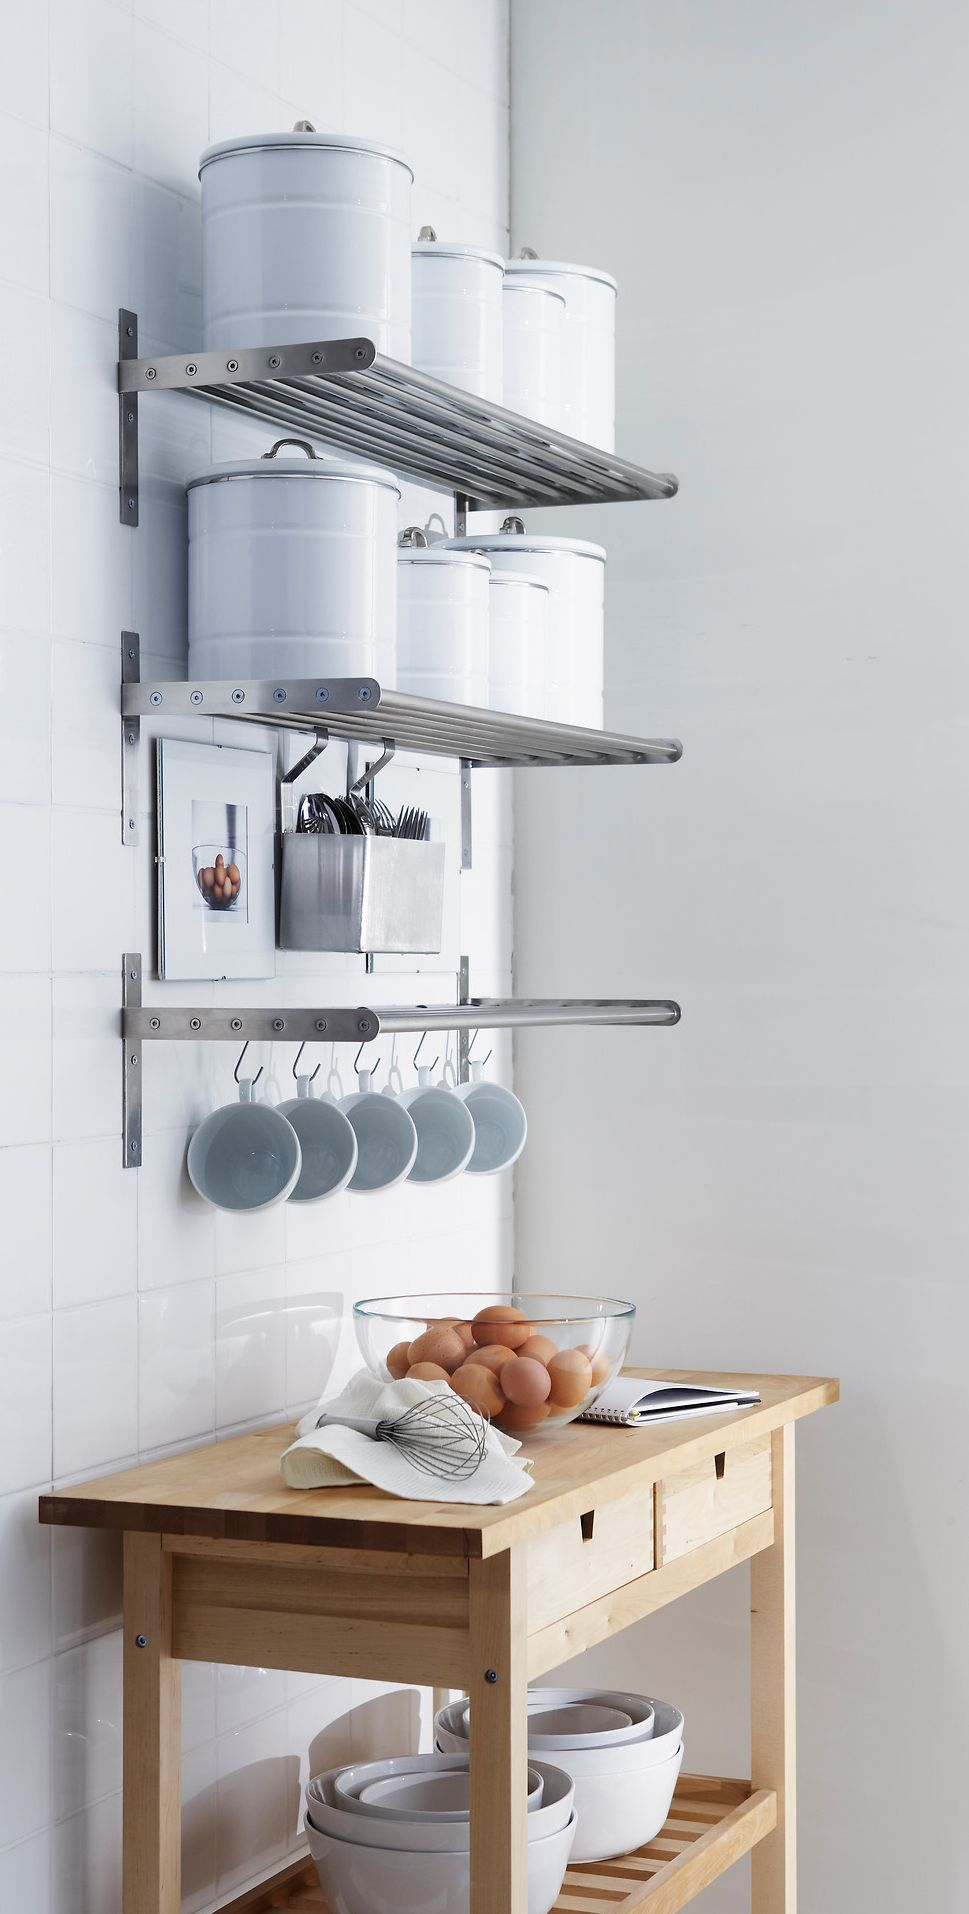 kitchen organization tips kitchen organization ideas Wall storage